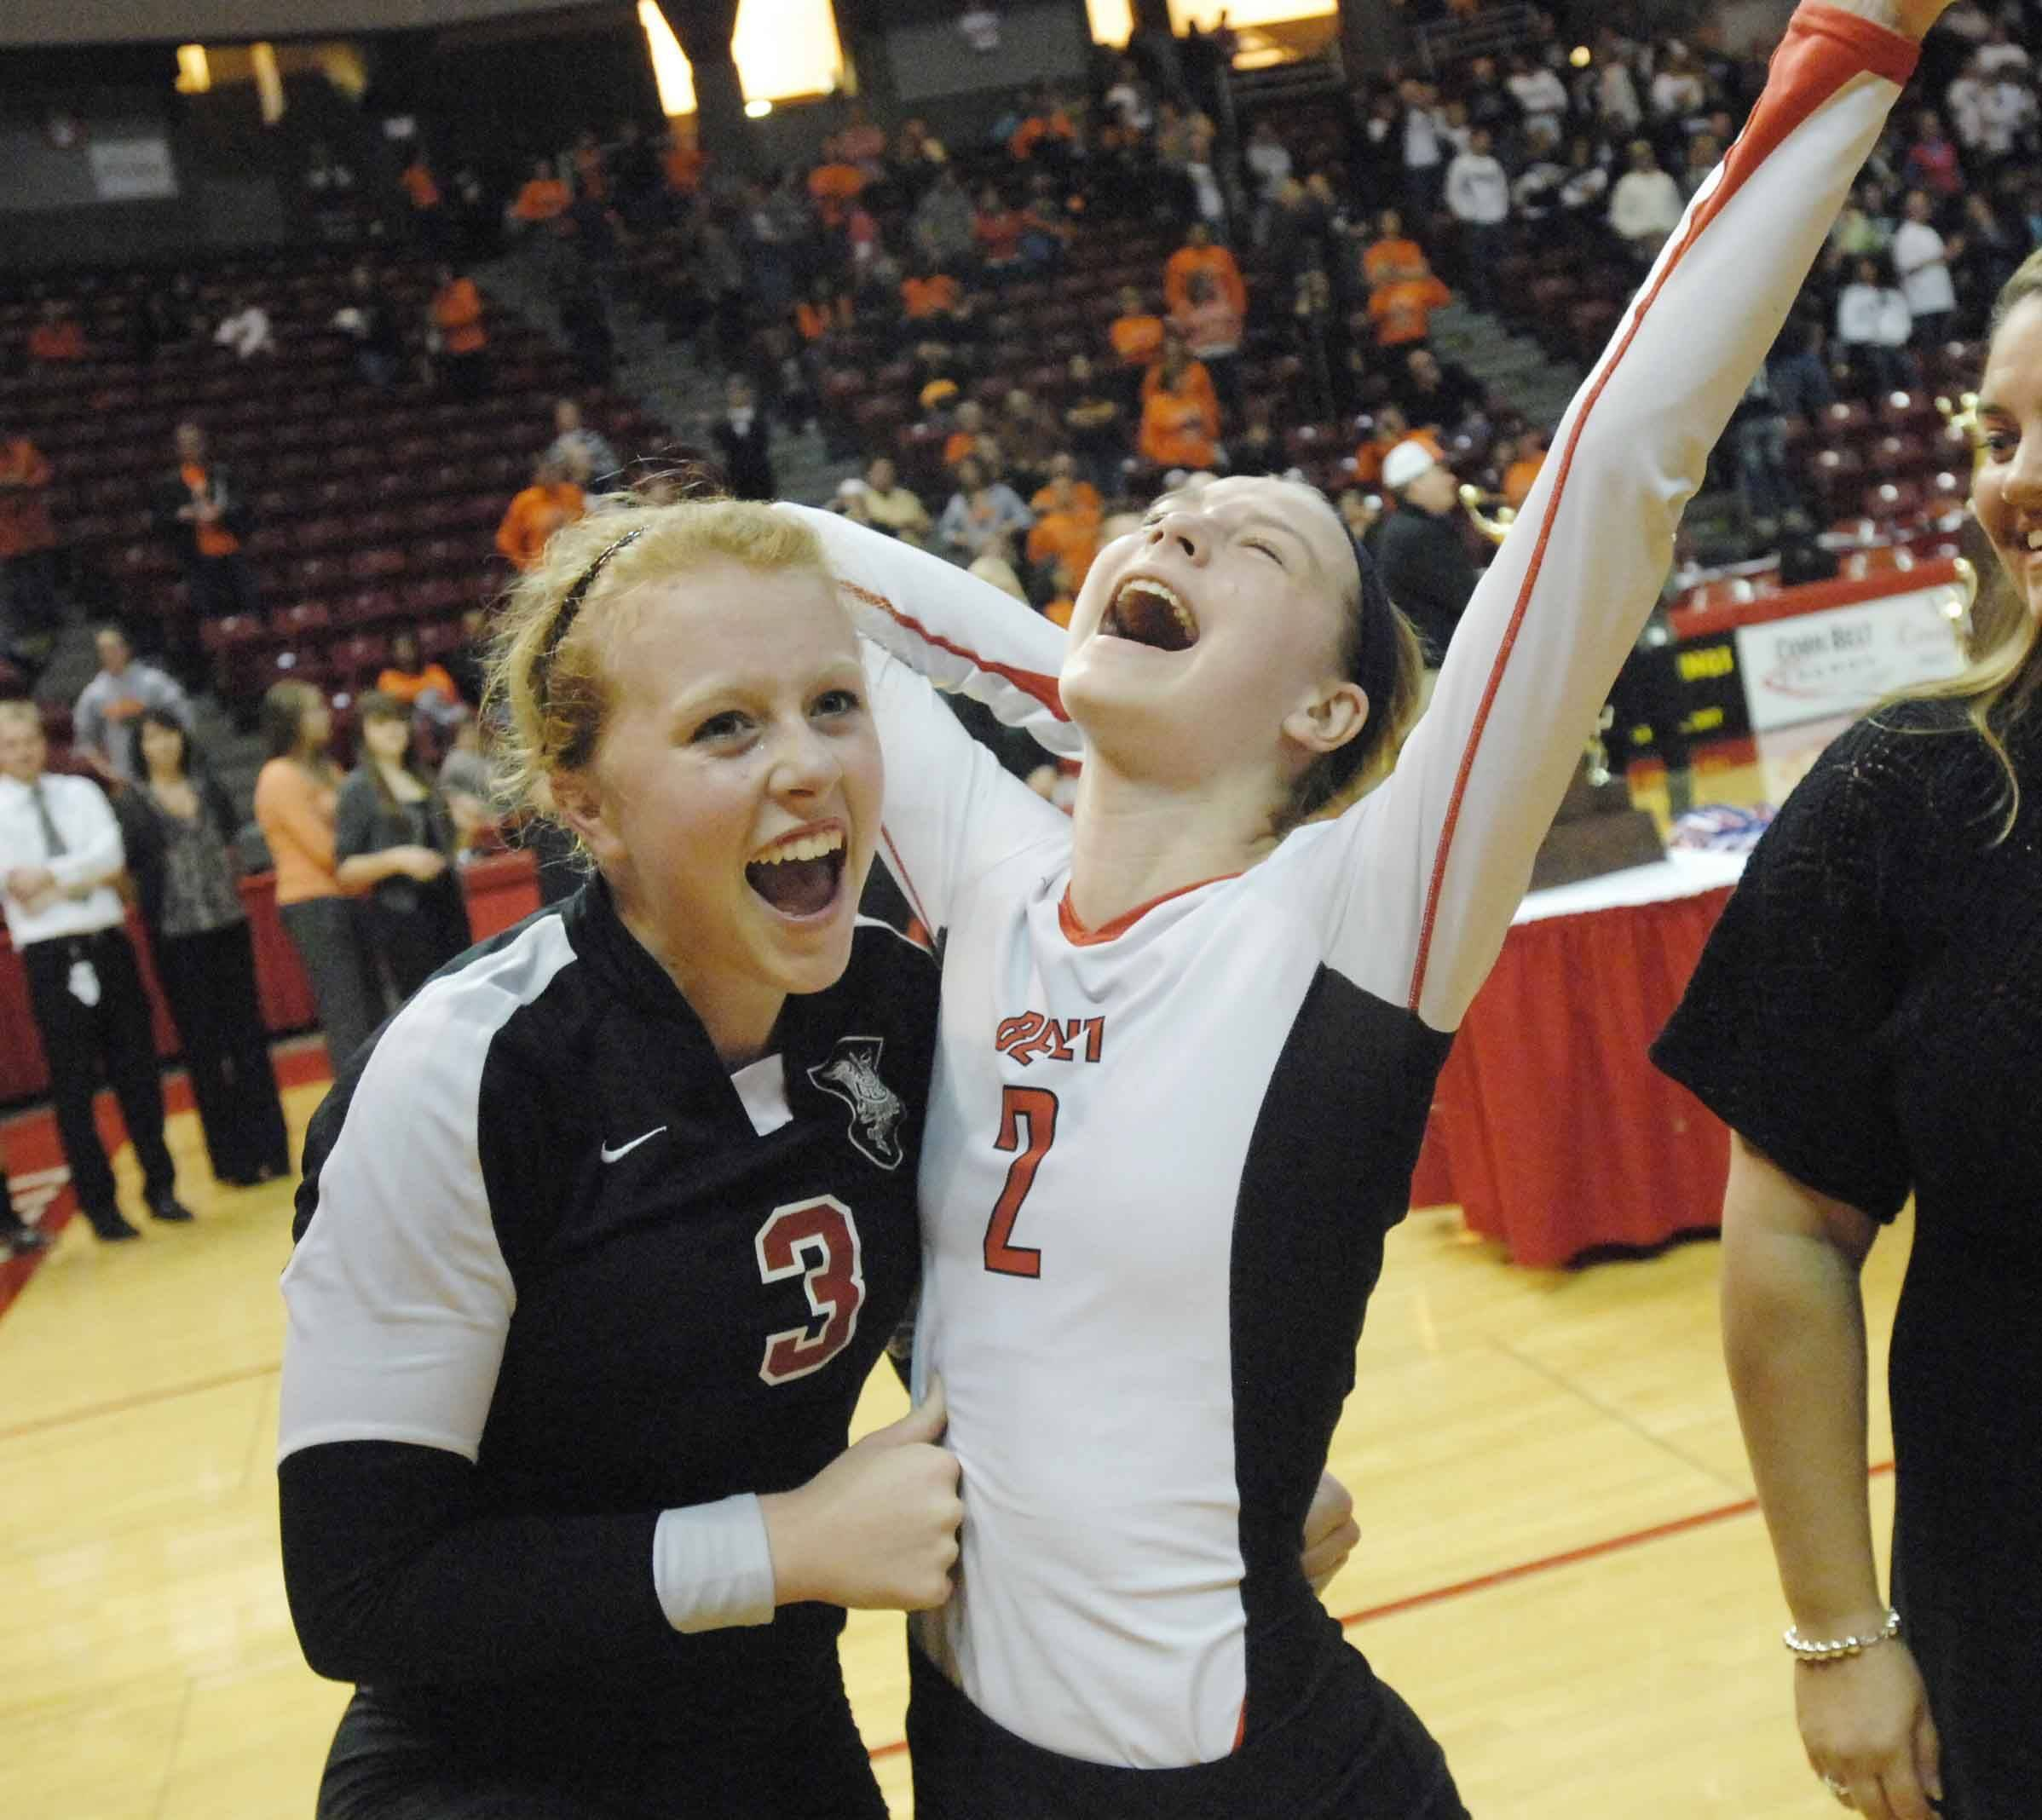 Benet's Sheila Doyle, left, and Brittany Kmieciak celebrate the Redwings' win over Cary-Grove in the Class 4A volleyball championship in Normal Saturday.